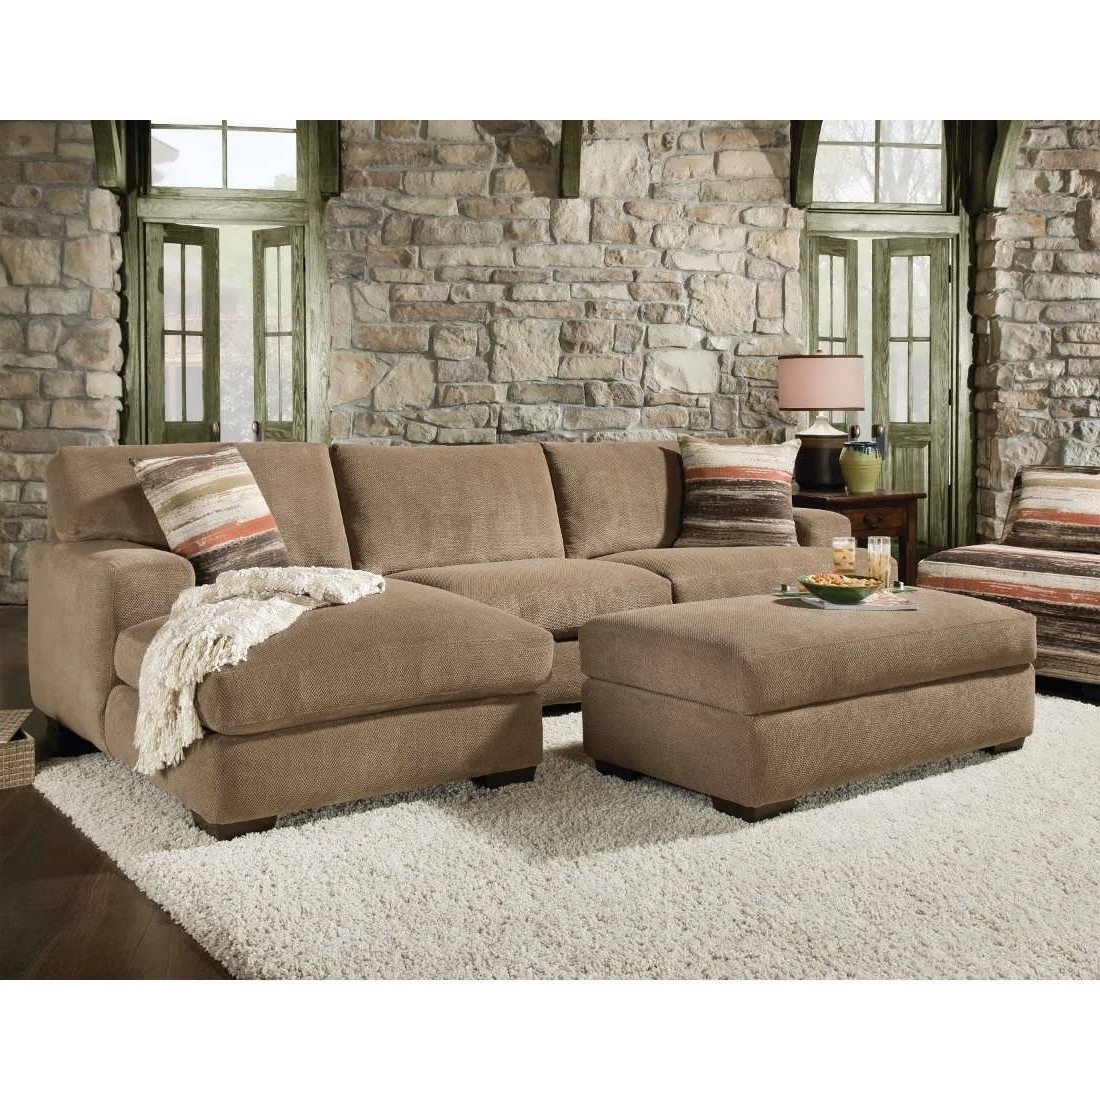 Microfiber Sectional Sofas With Chaise With 2017 Sofa : Living Room Sectionals Sectional Couch With Chaise Tan (View 8 of 15)